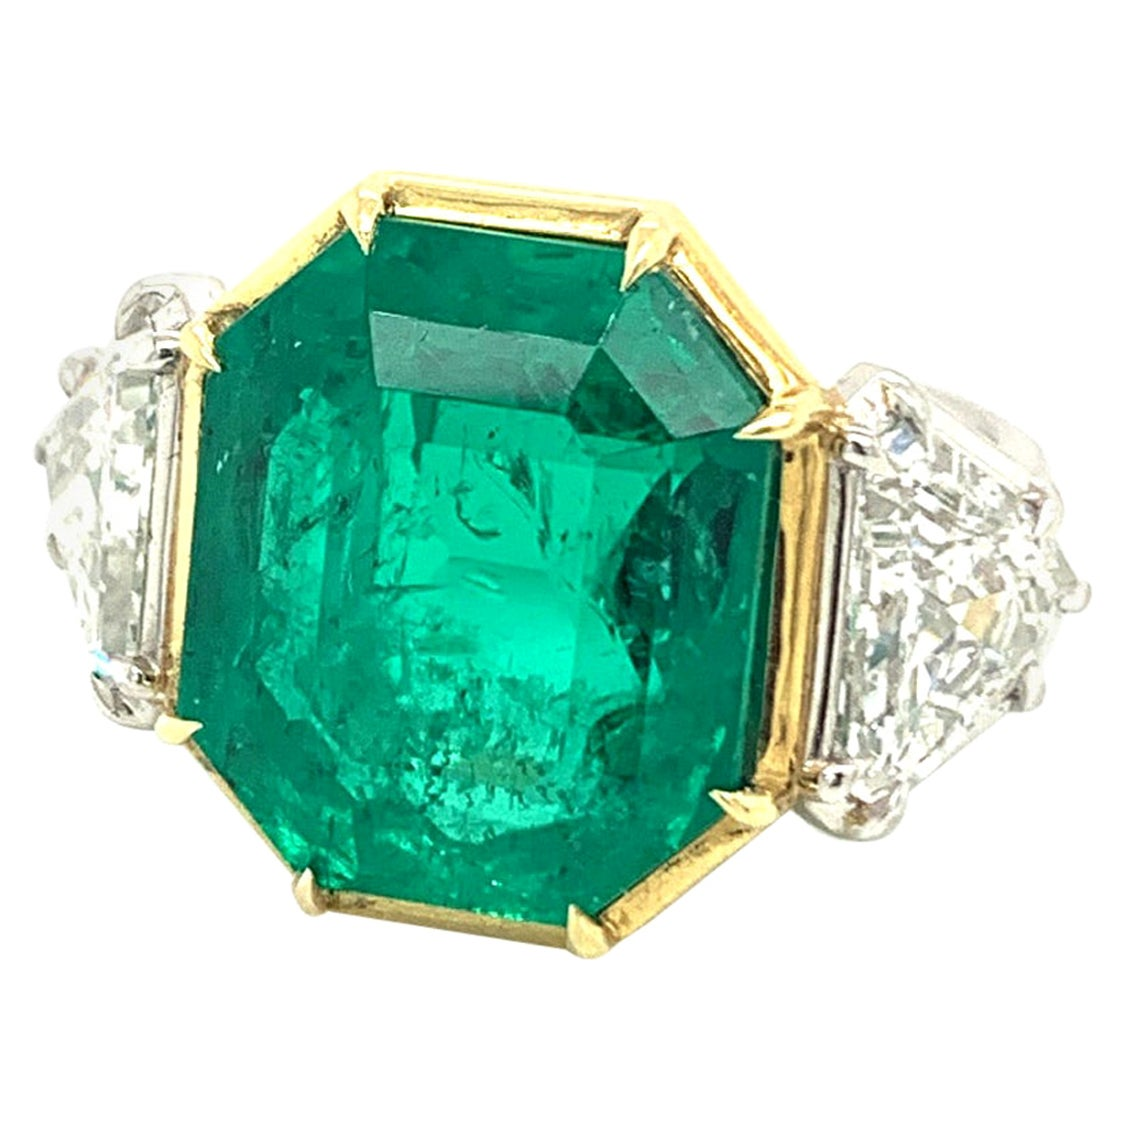 Jack Weir & Sons 10 Carat AGL Certified Colombian Emerald Diamond Platinum Ring